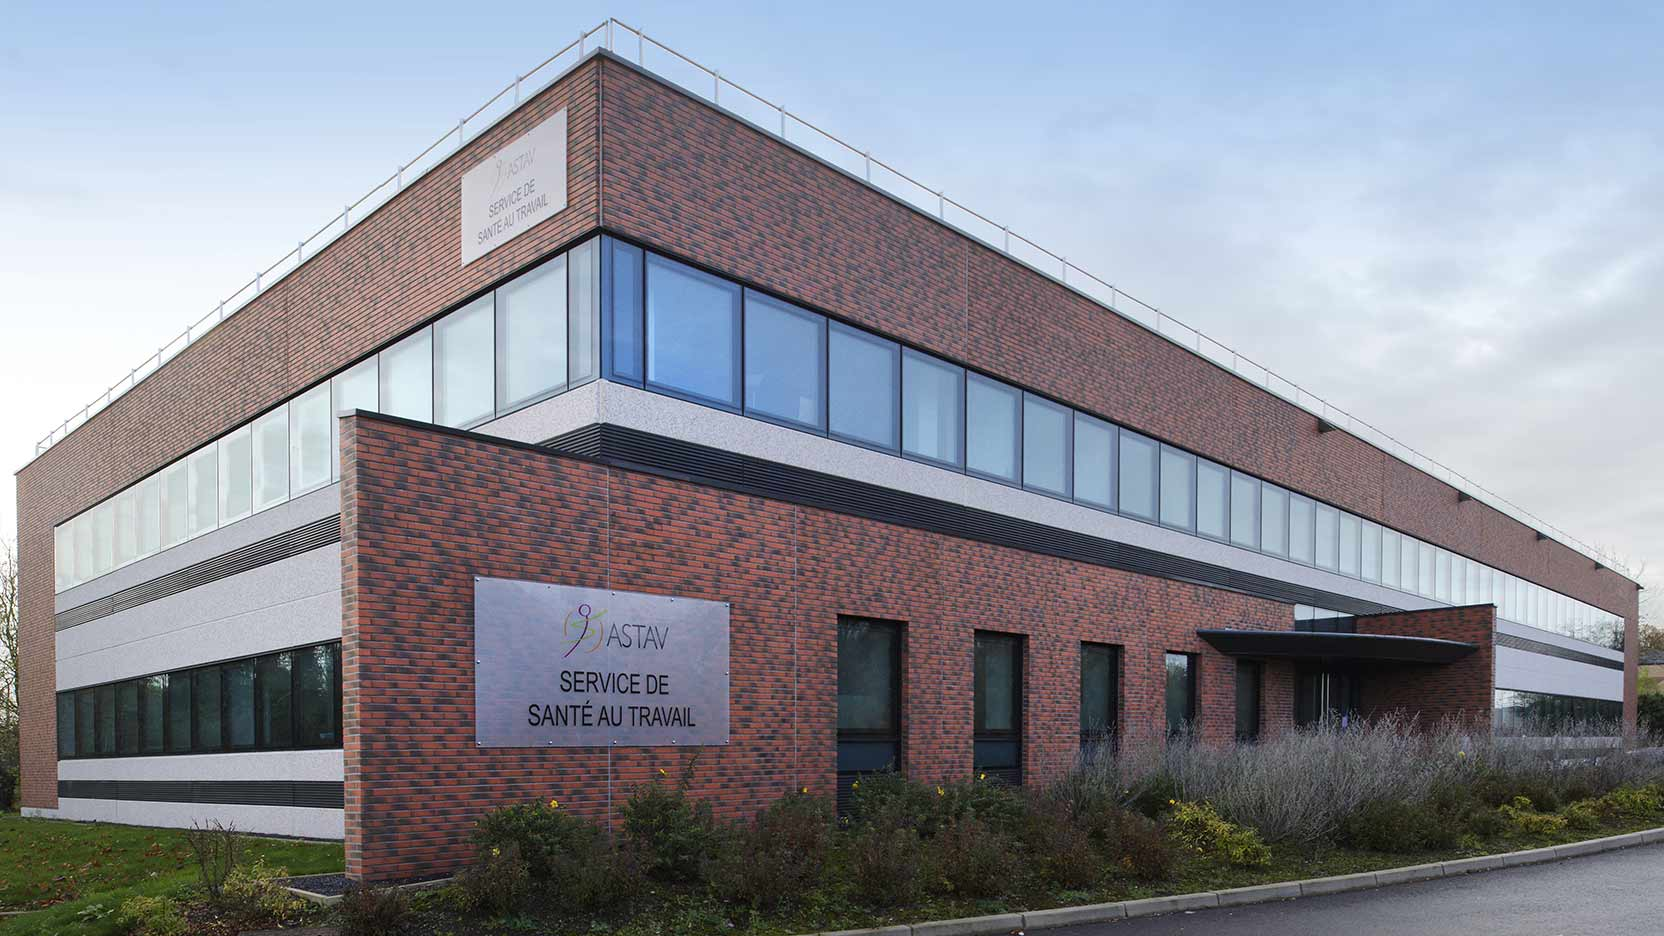 Medical offices for ASTAV, the Association for Health in the Workplace, in Valenciennes